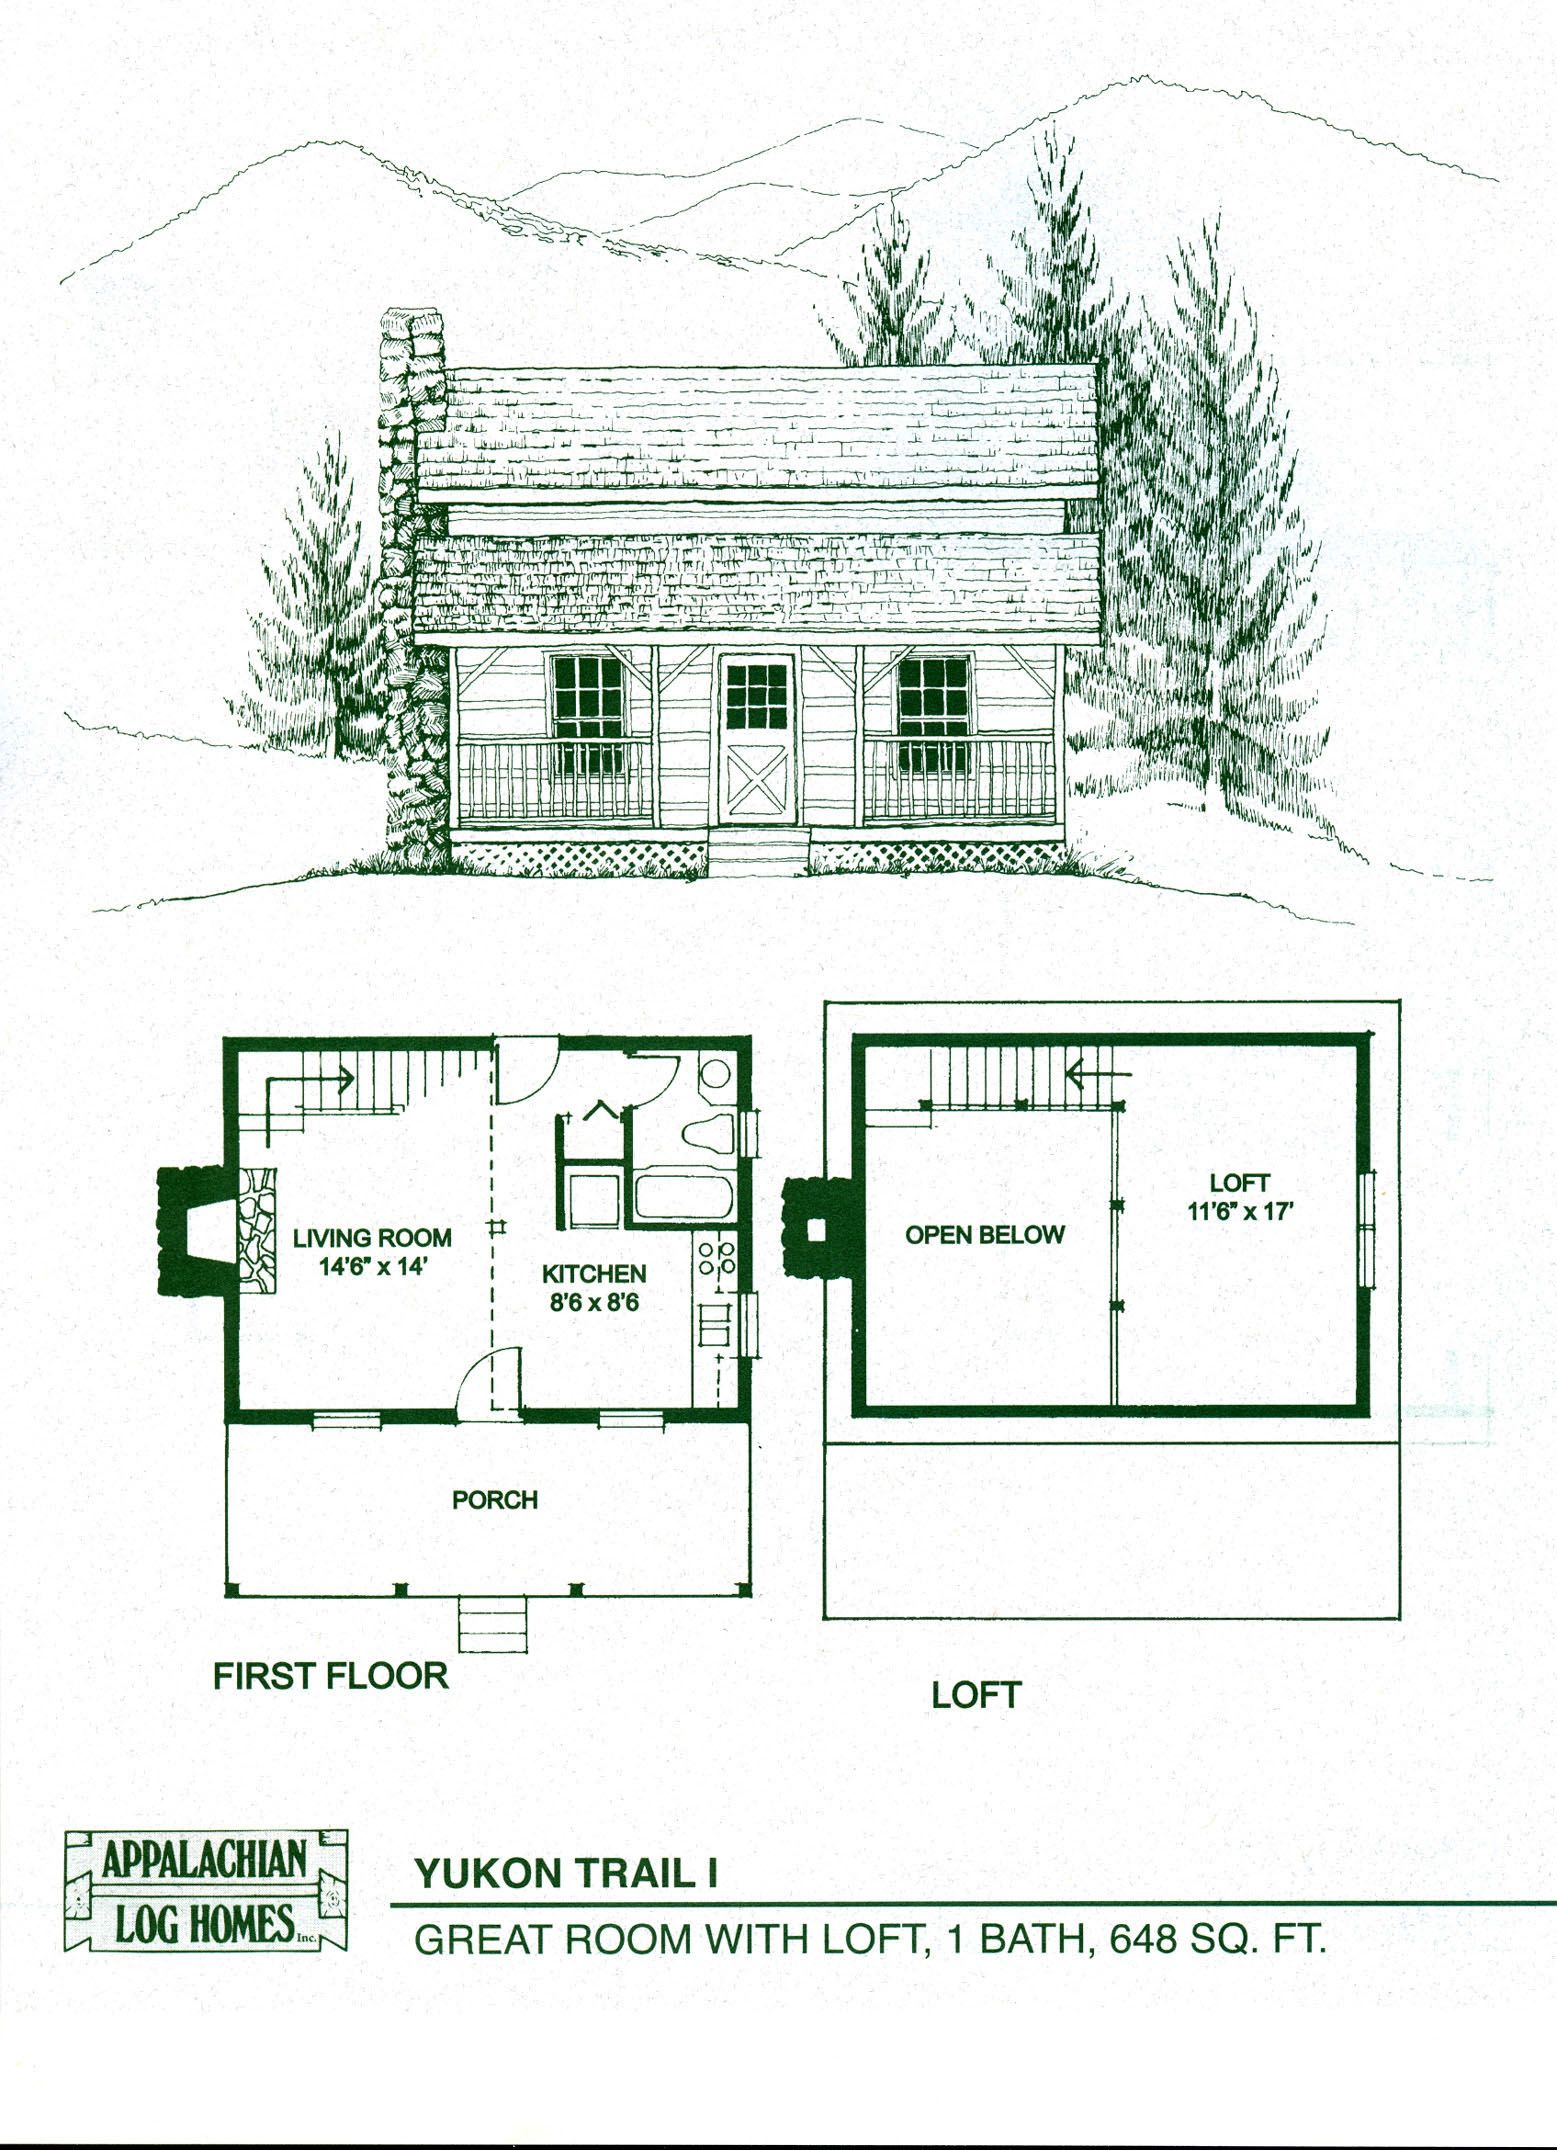 Log home floor plans log cabin kits appalachian log for Log home blueprints